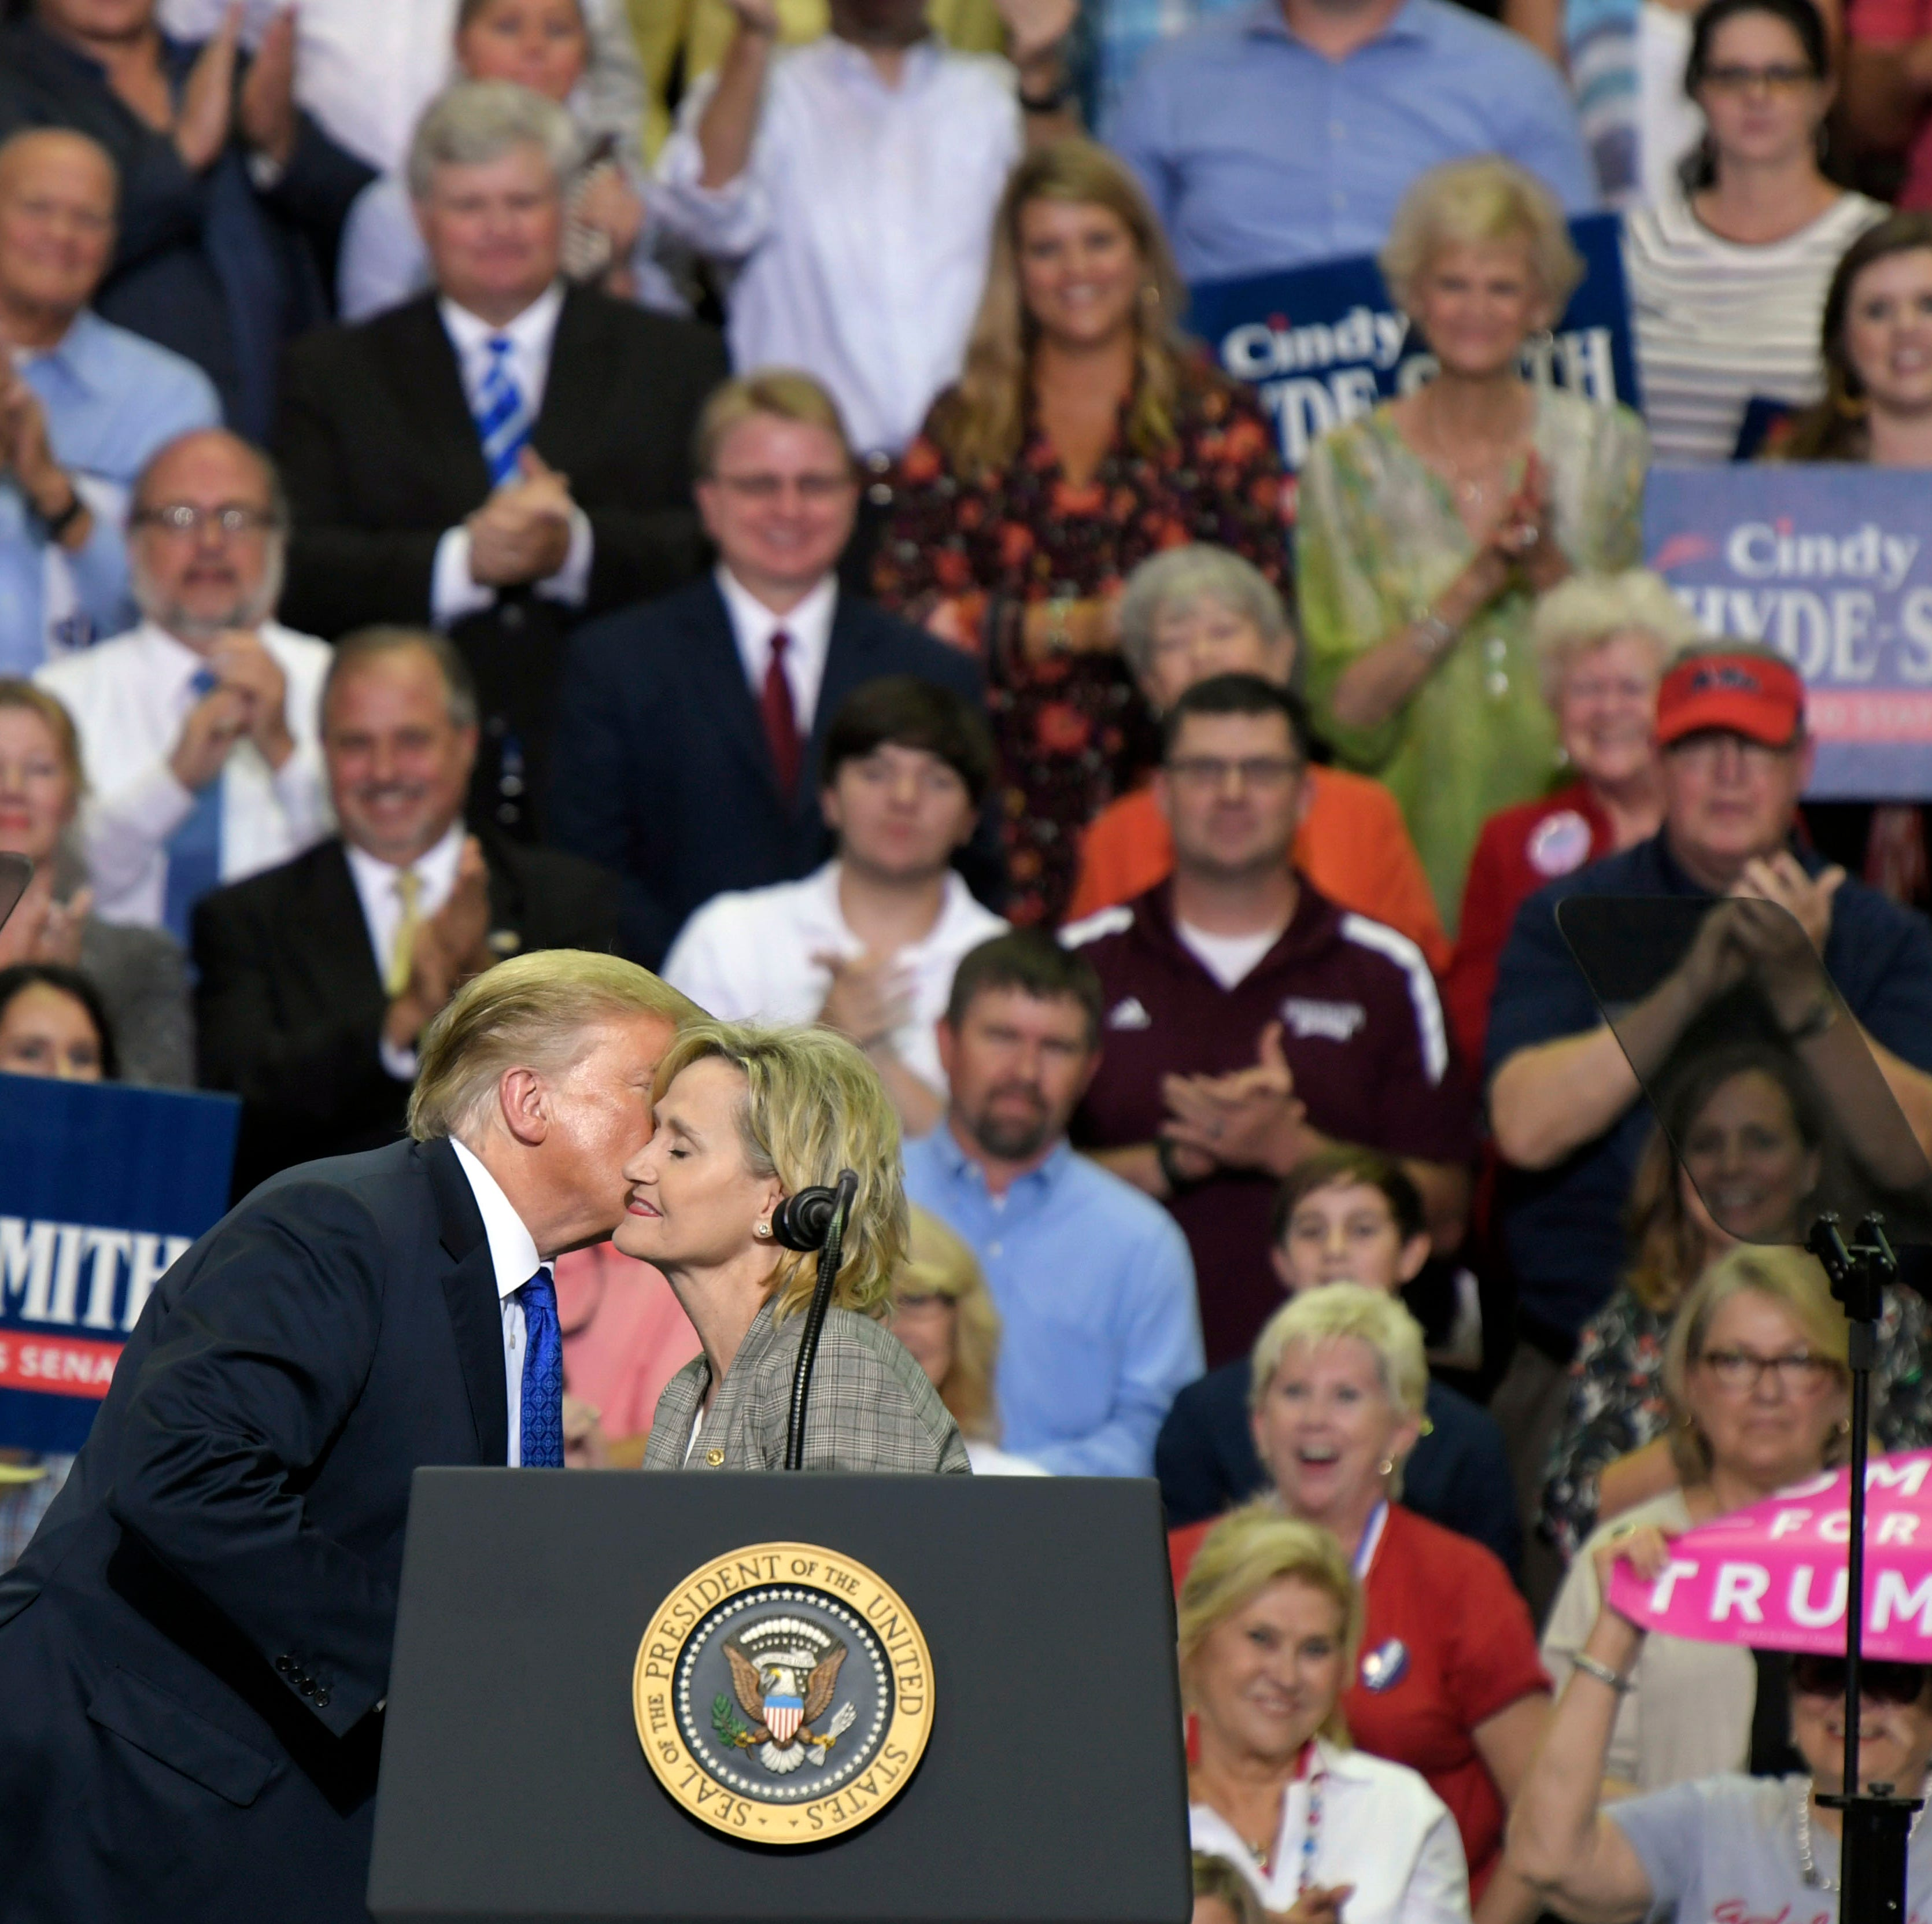 President Trump considering another Mississippi trip for Cindy Hyde-Smith